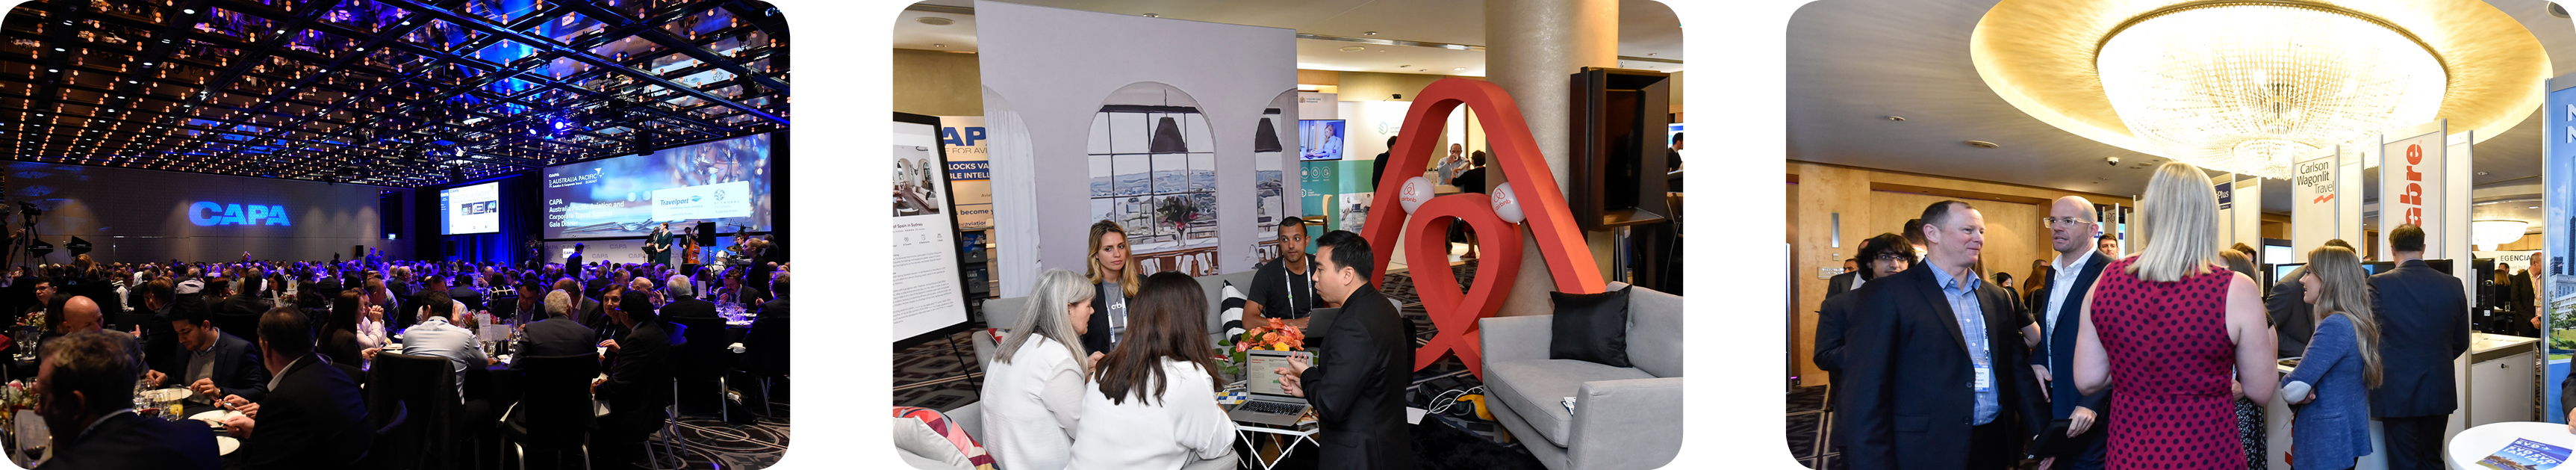 Networking Potential CAPAs Events Allow You The Opportunity To Interact And Engage With Hundreds Of C Level Executives Suppliers Buyers Offering